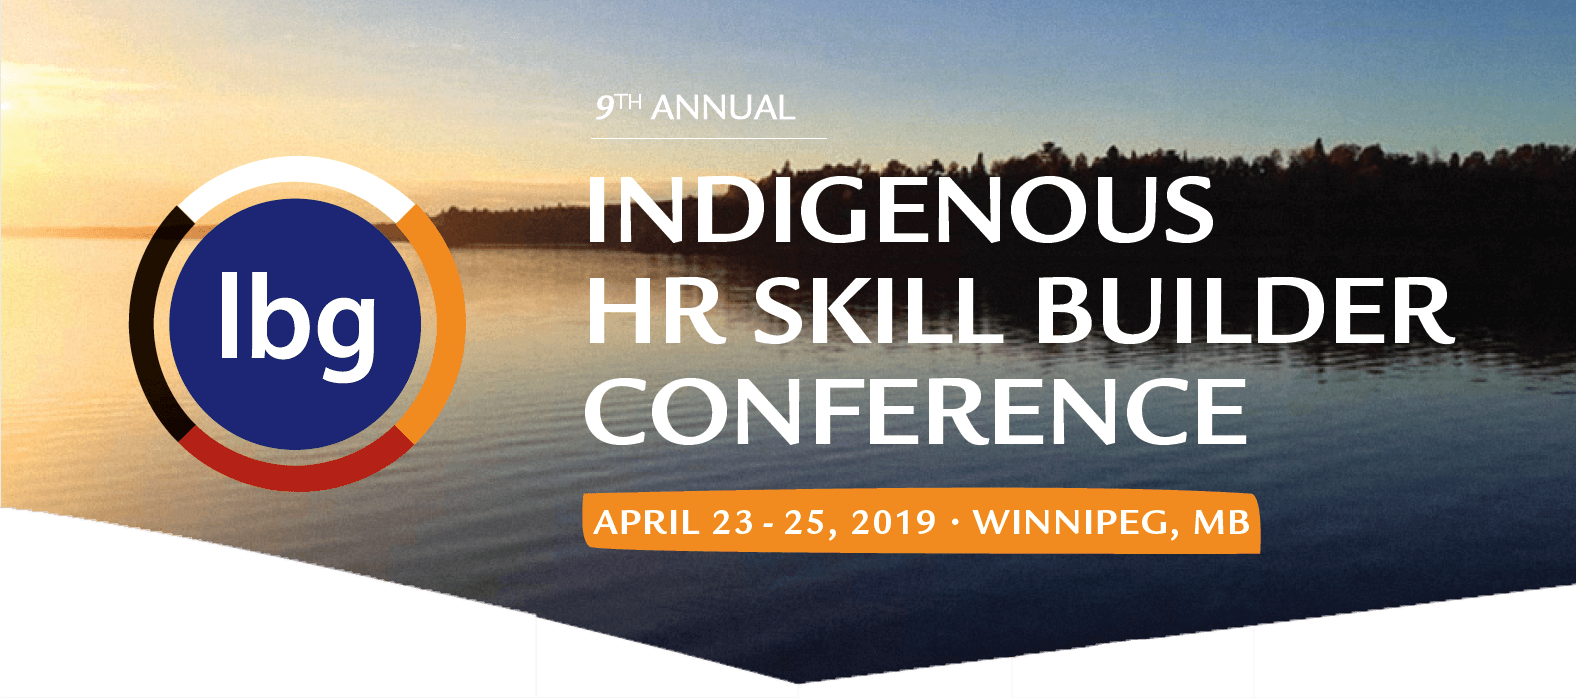 v2 2019 Indigenous HR Skill Builder Conference Header